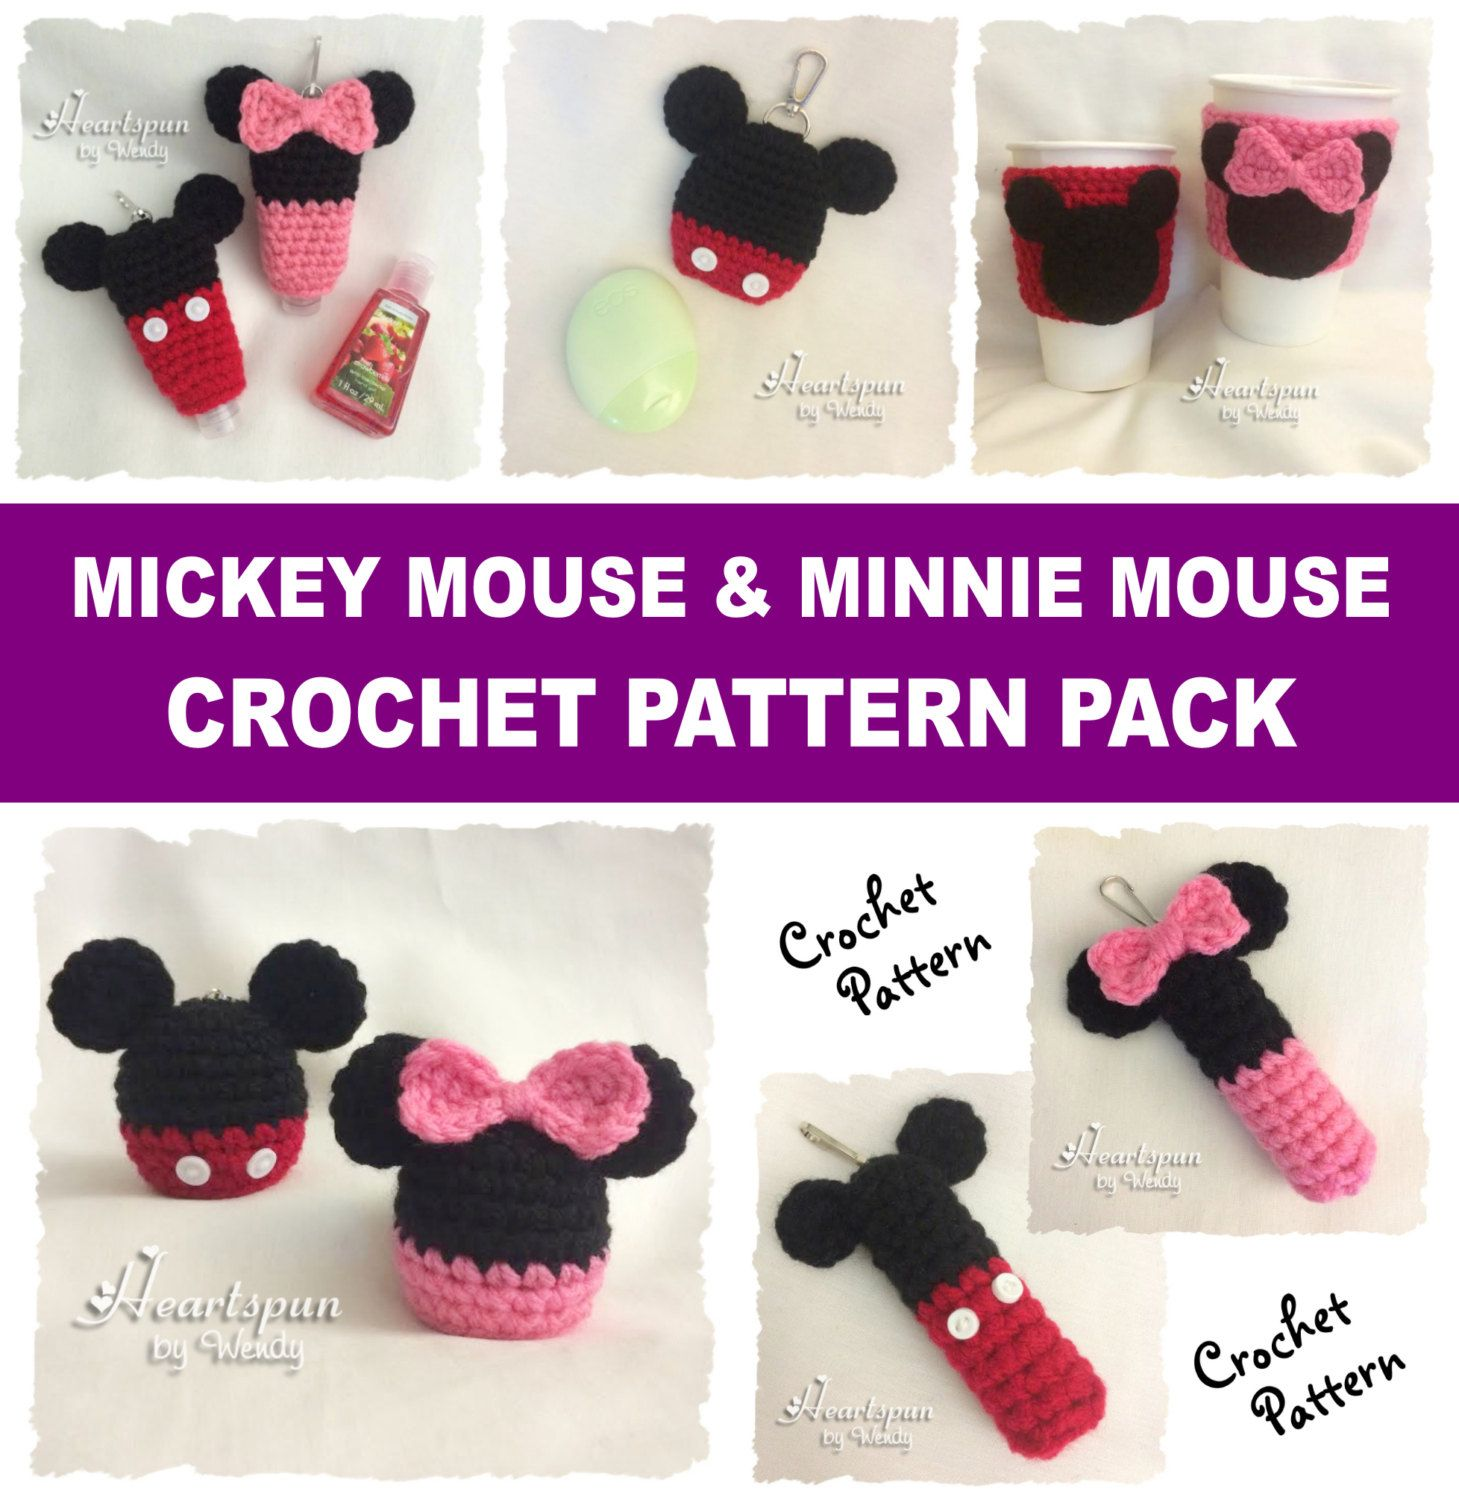 Crochet pattern bundle mickey mouse and minnie mouse holders for crochet pattern bundle mickey mouse and minnie mouse holders for eos lip balm eos lotion chapstick bankloansurffo Choice Image